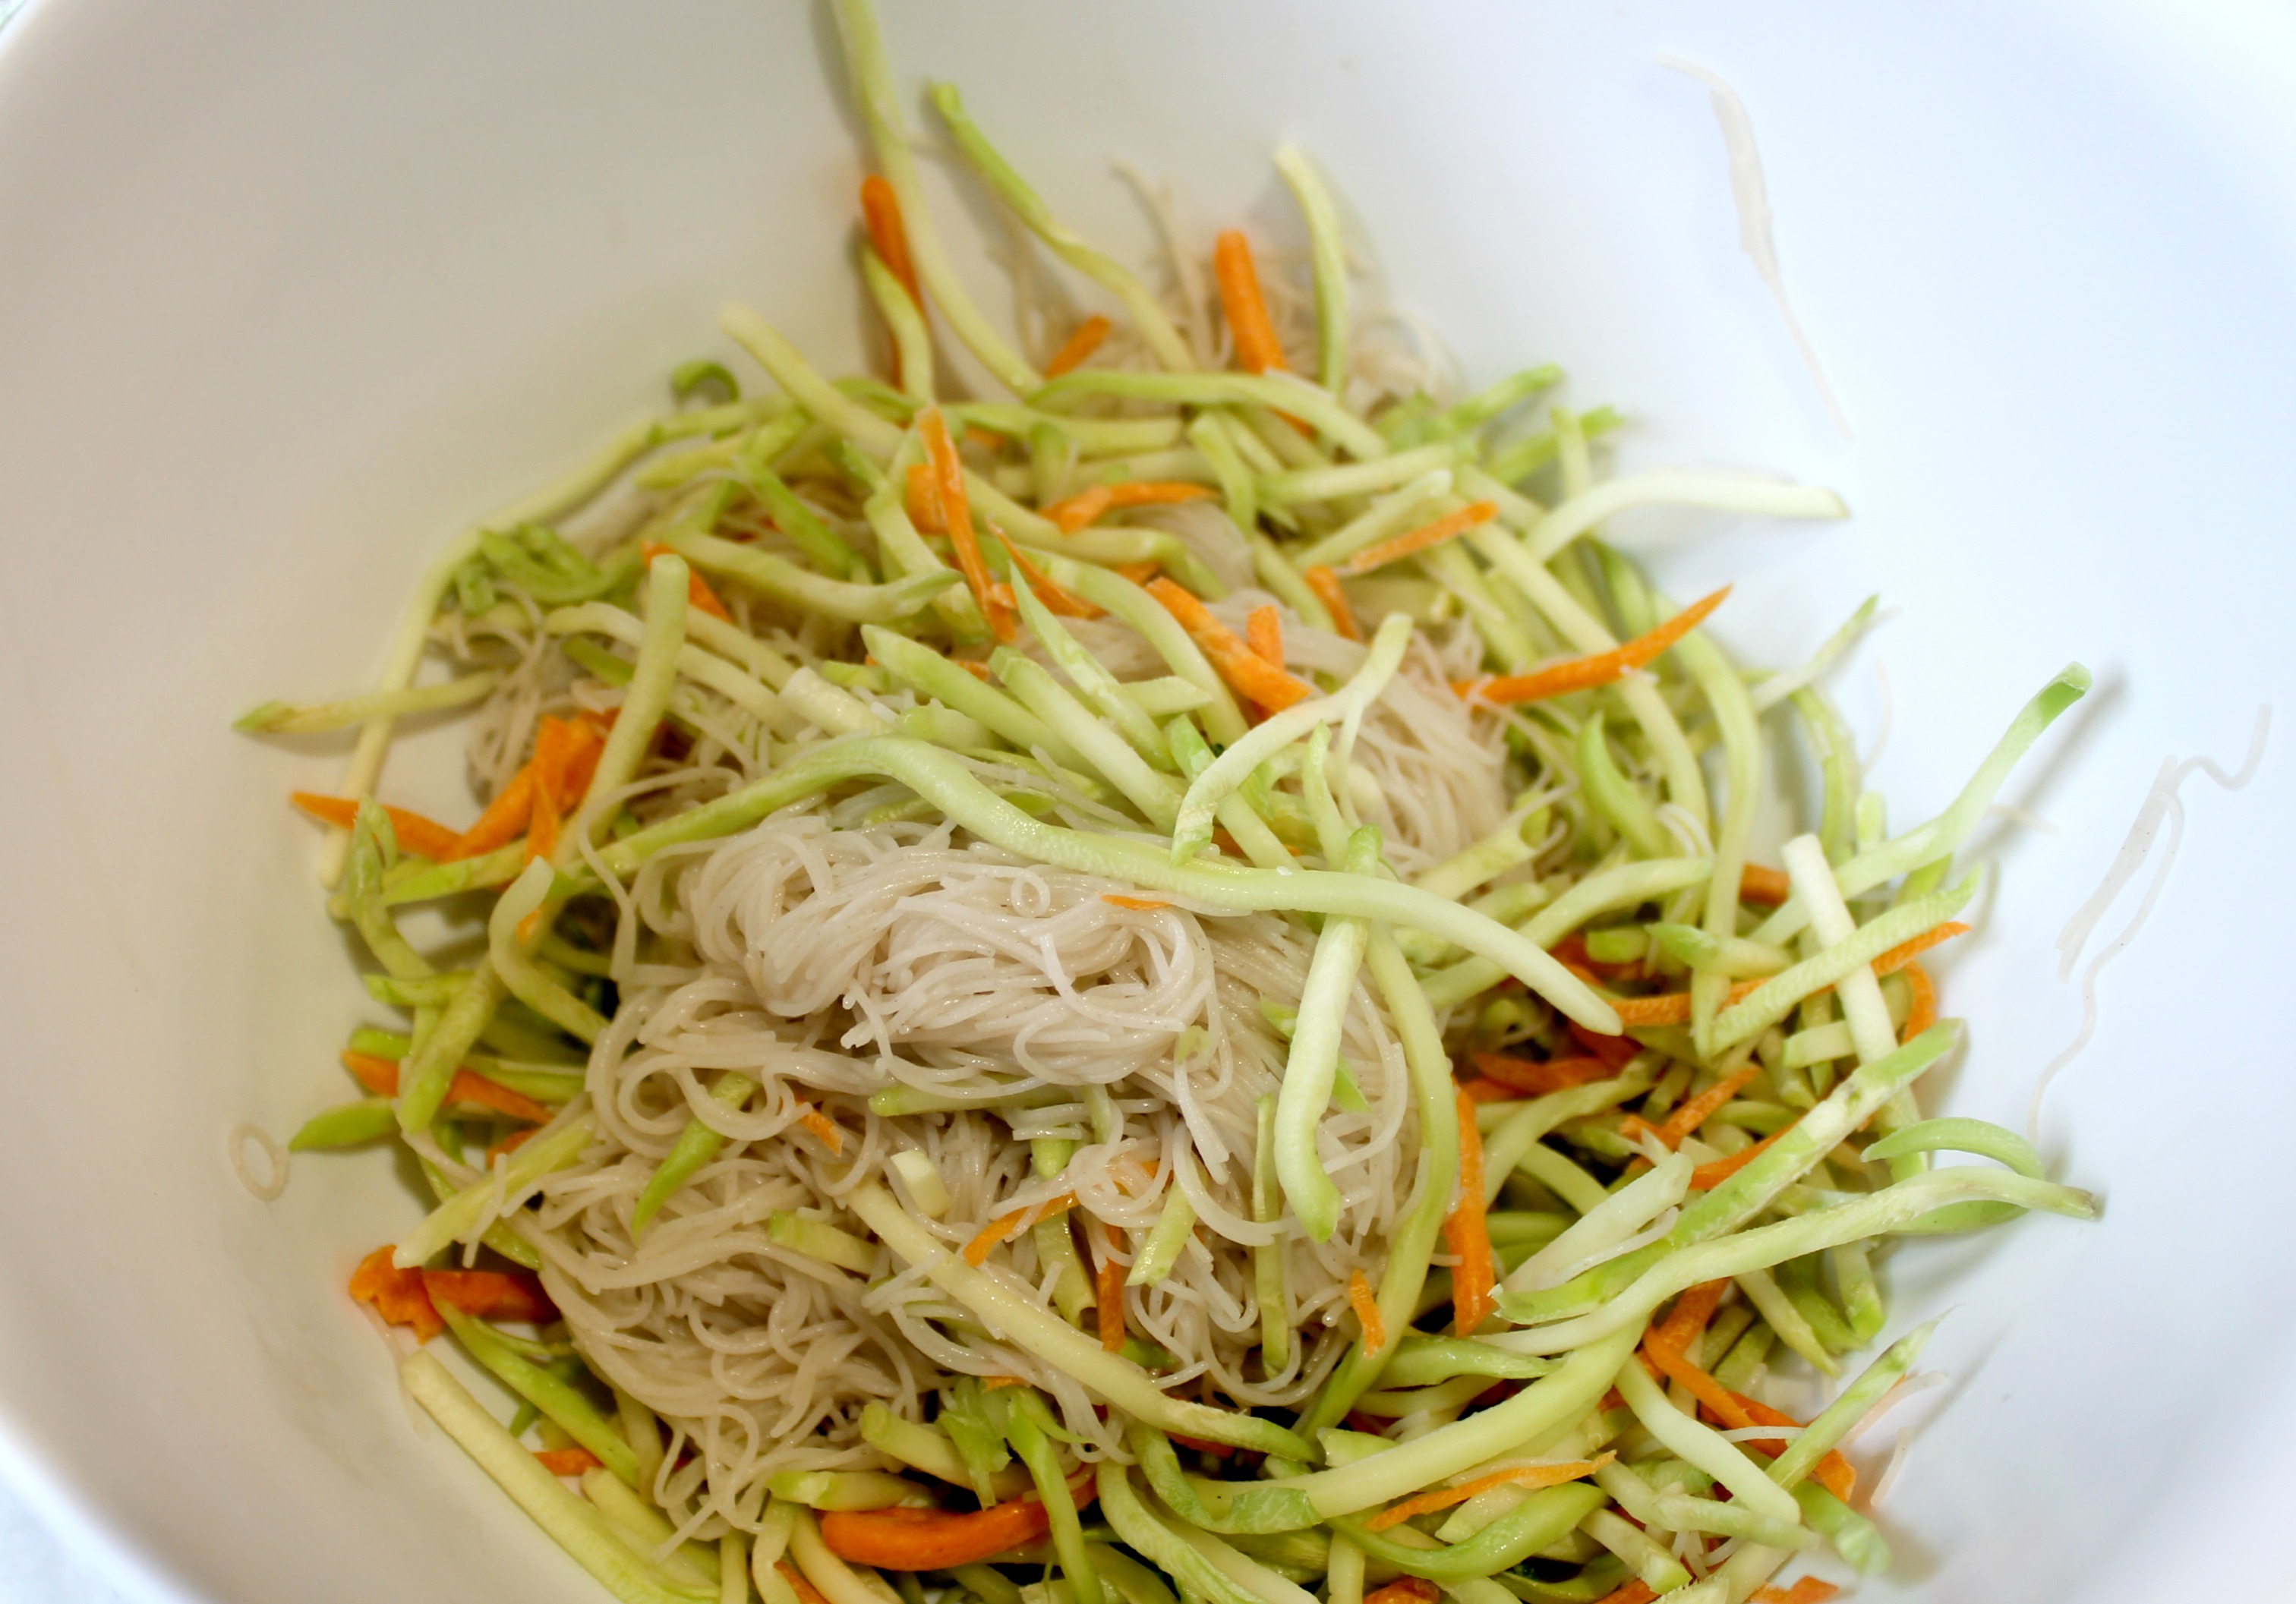 Asian Noodle Salad with Broccoli Slaw